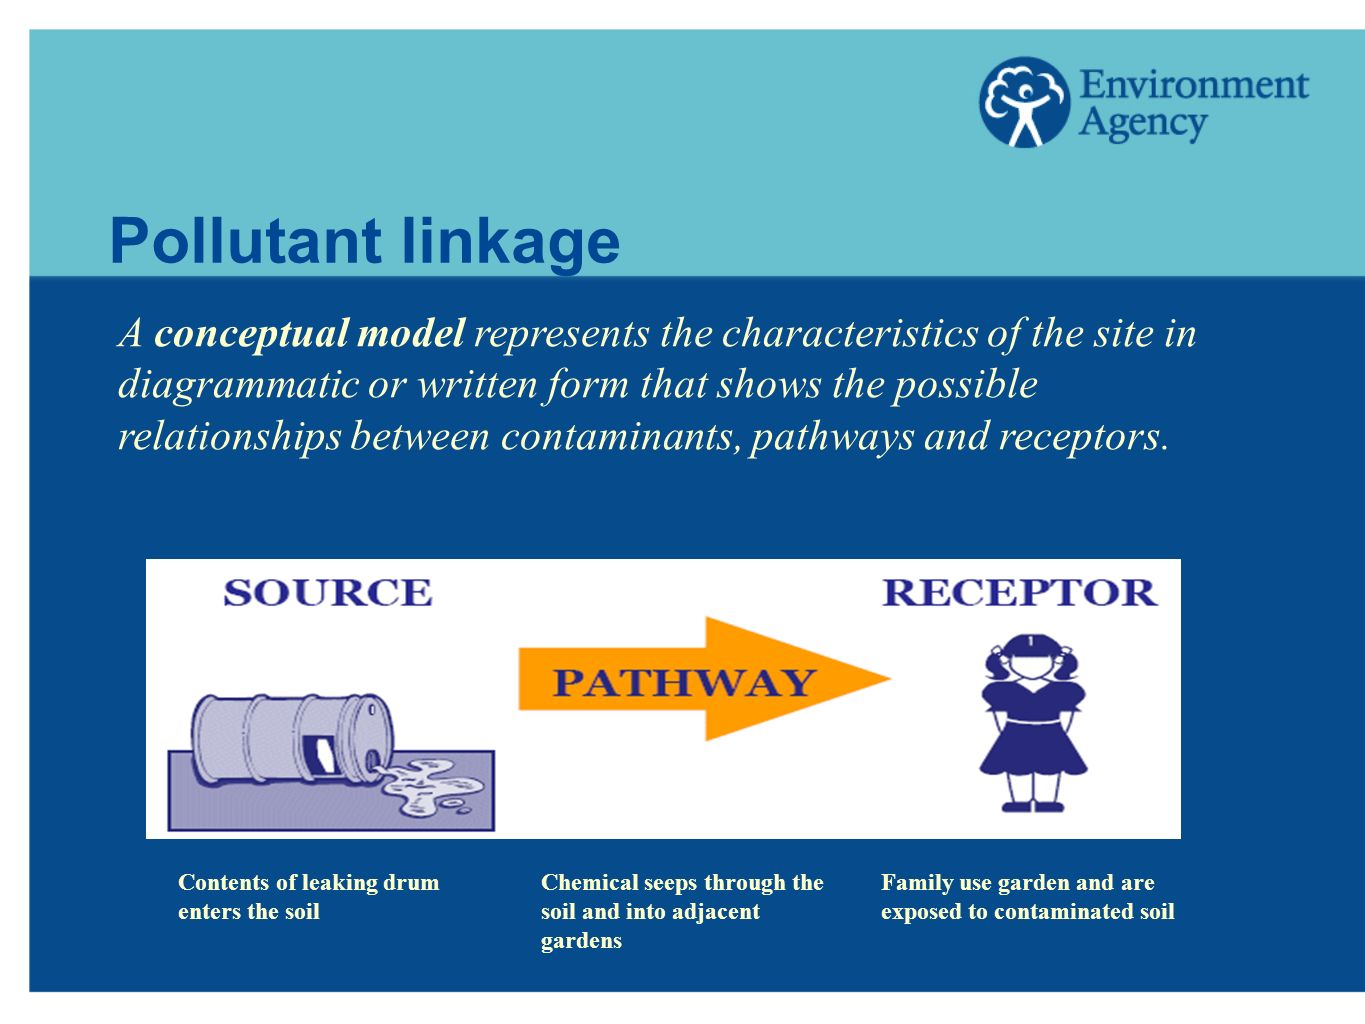 Pollutant linkage A conceptual model represents the characteristics of the site in diagrammatic or written form that shows the possible relationships between contaminants, pathways and receptors.